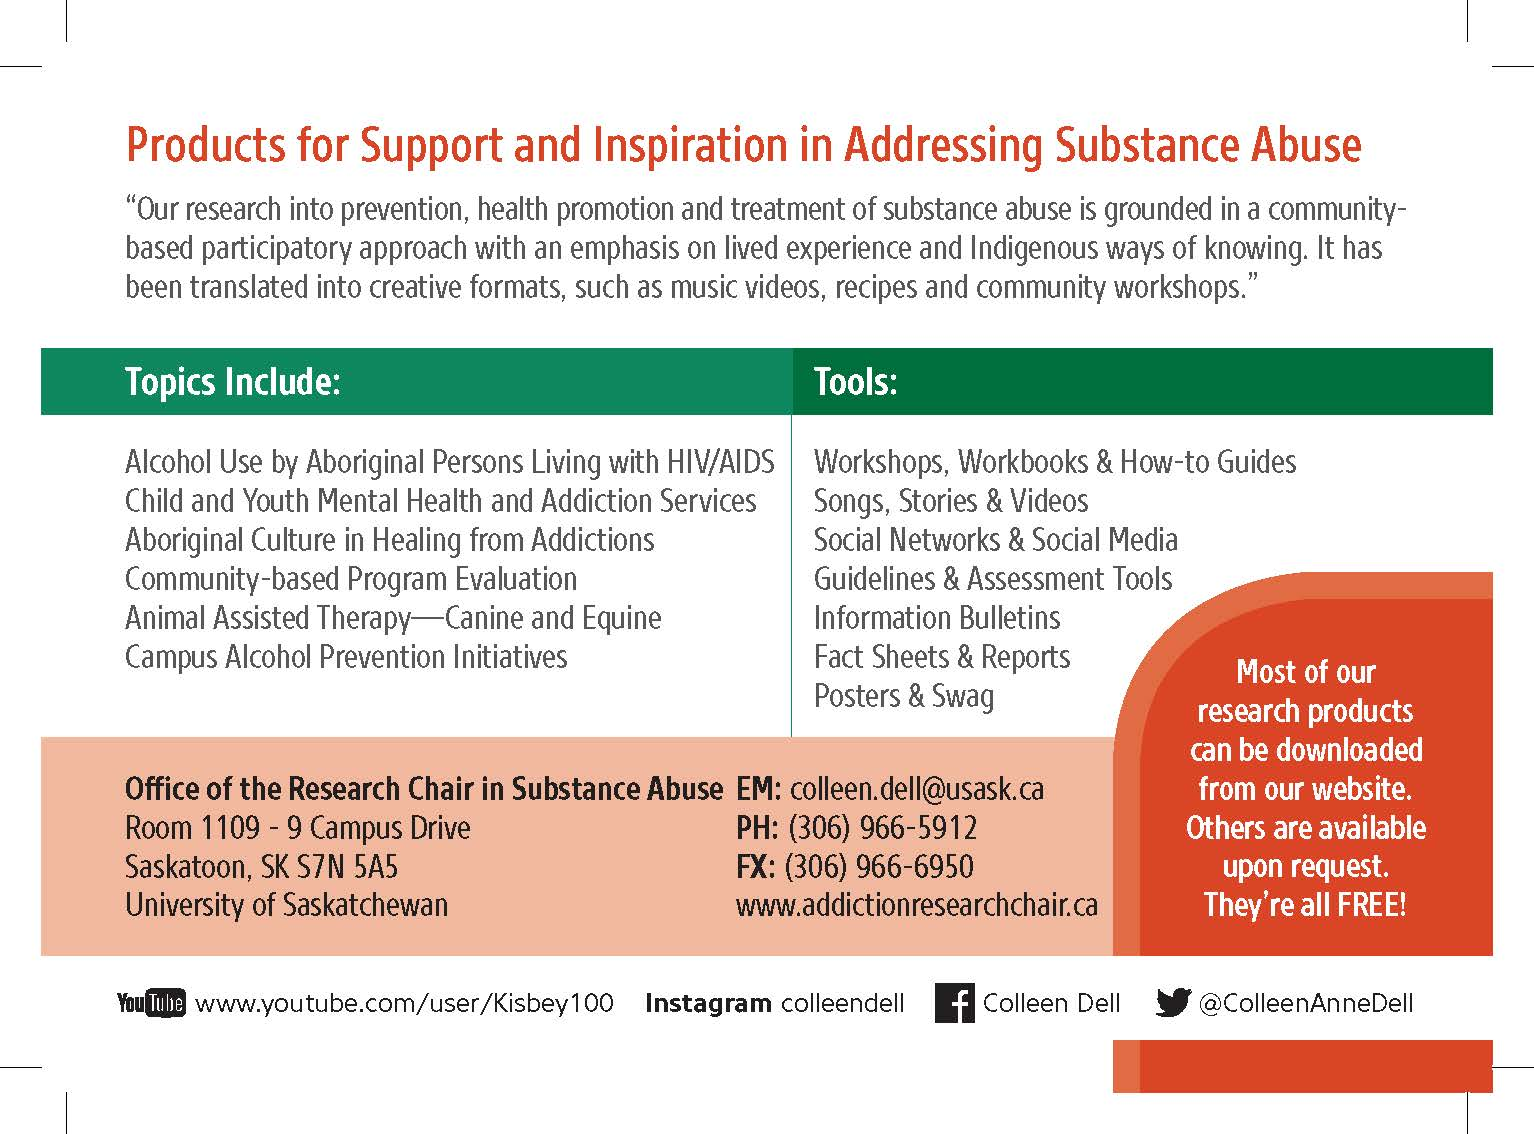 Brief Intervention May Prevent >> Free Resources for Addressing Substance Abuse for ...